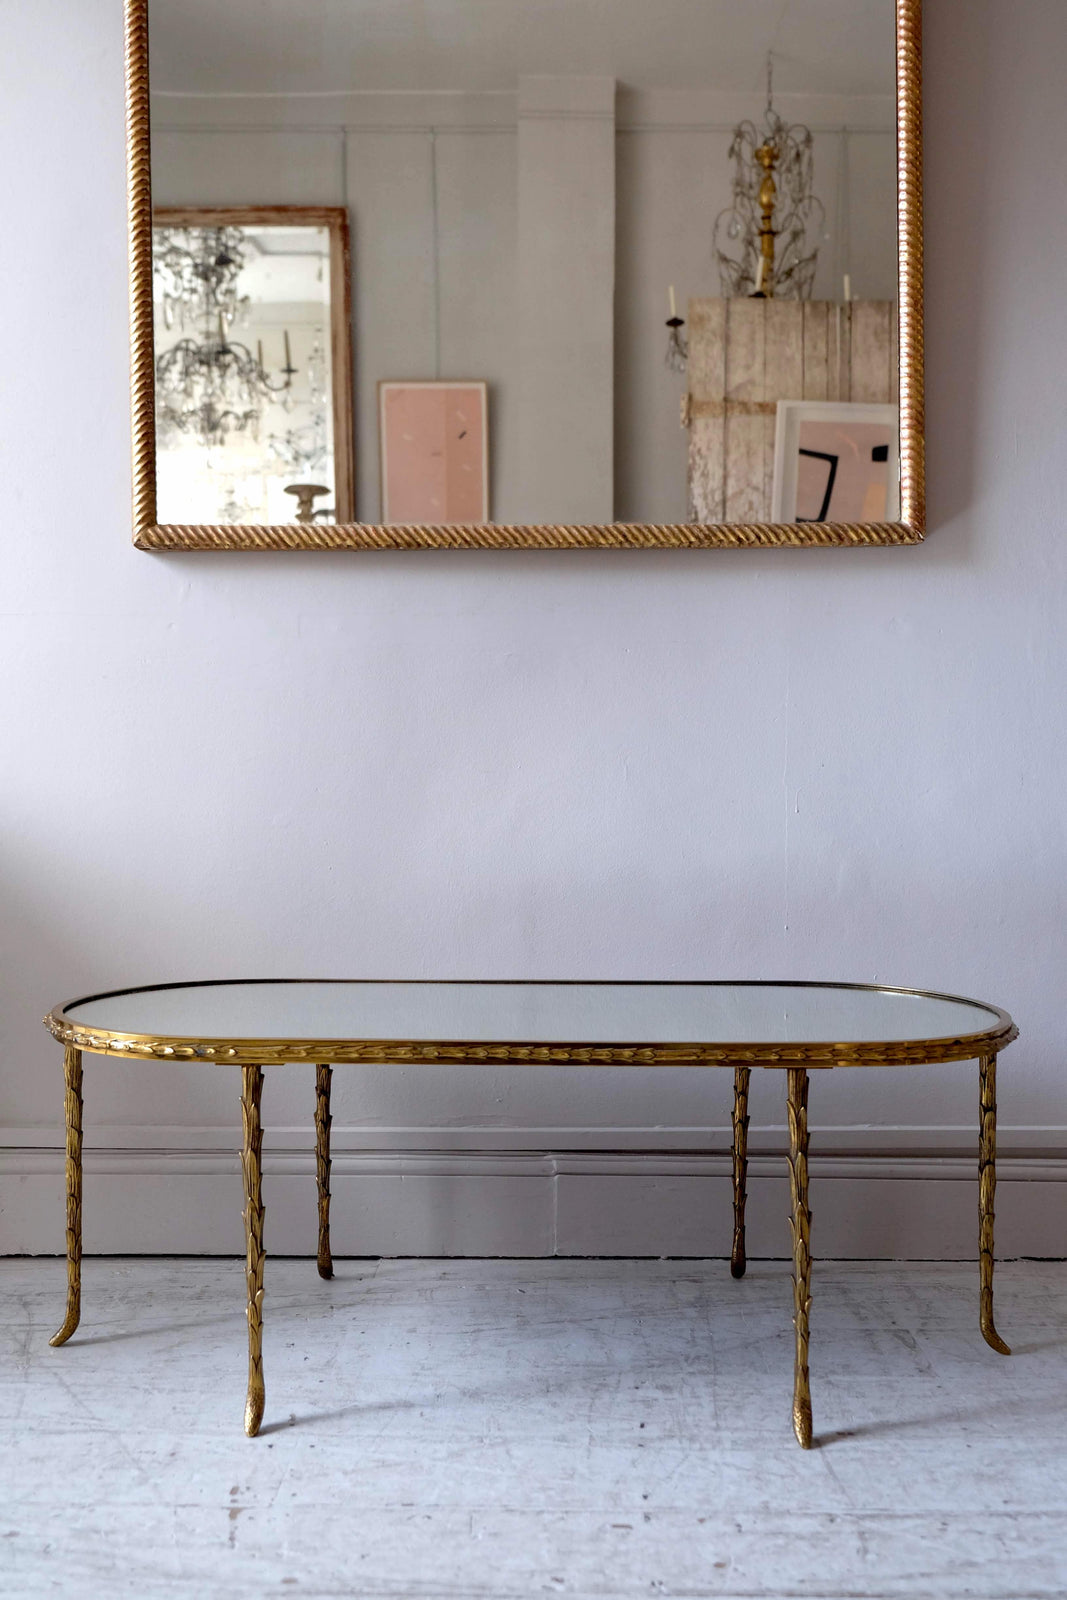 Mid 20th C. Mirror Top Coffee Table, Maison Bagues